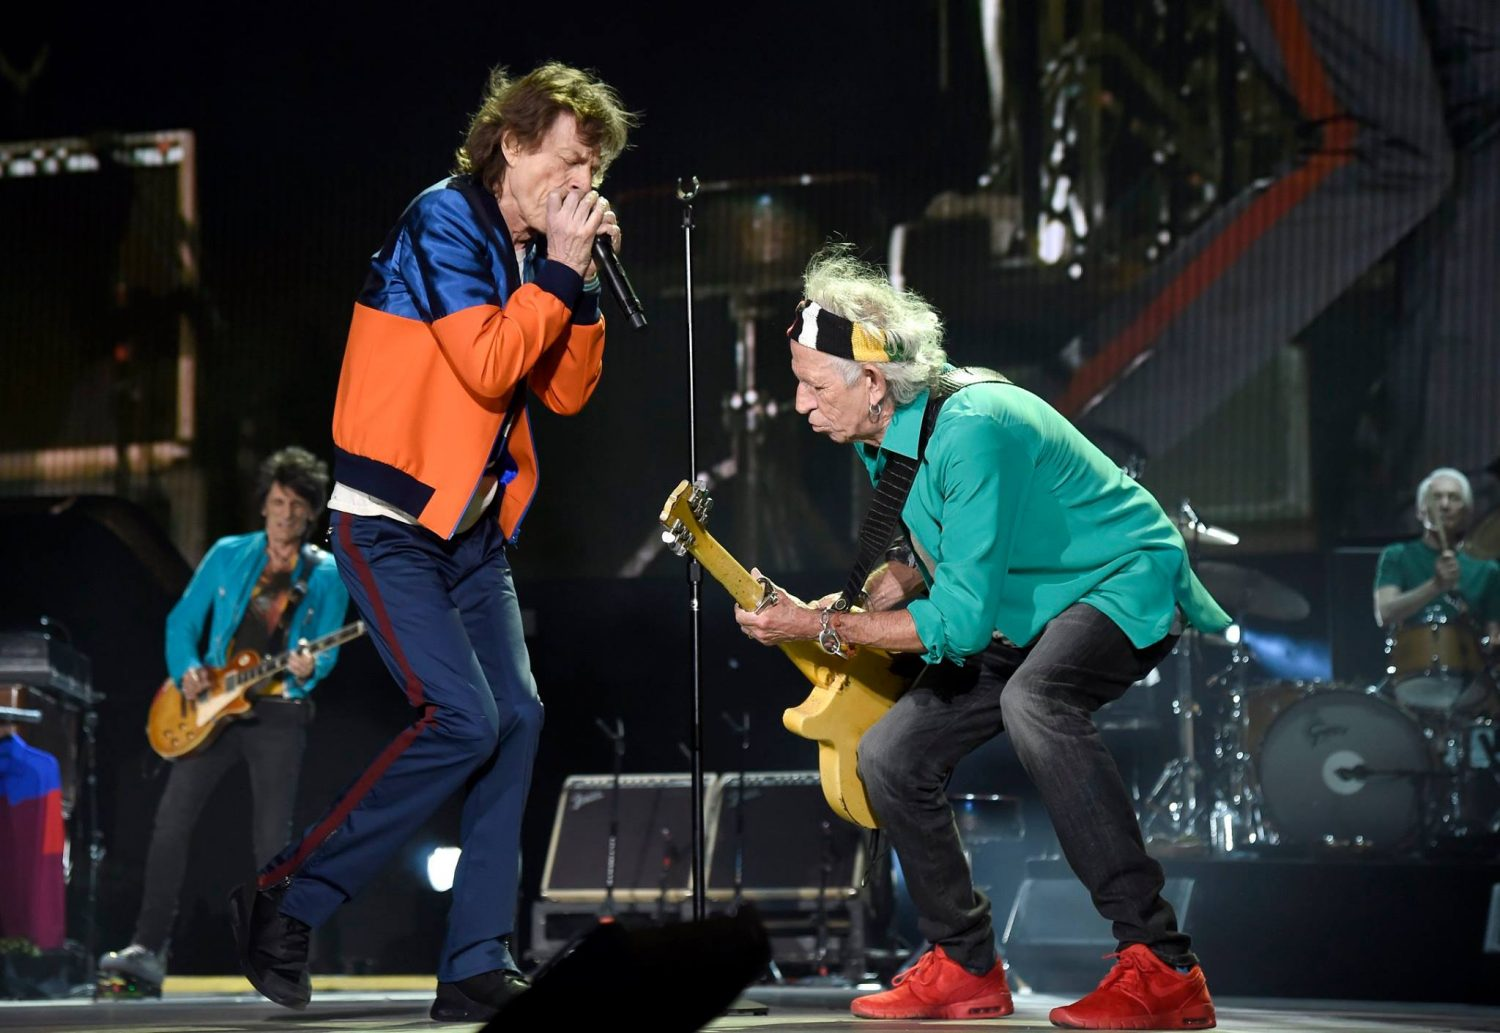 The Rolling Stones Cover Little Walter on New Album and The Beatles This Weekend